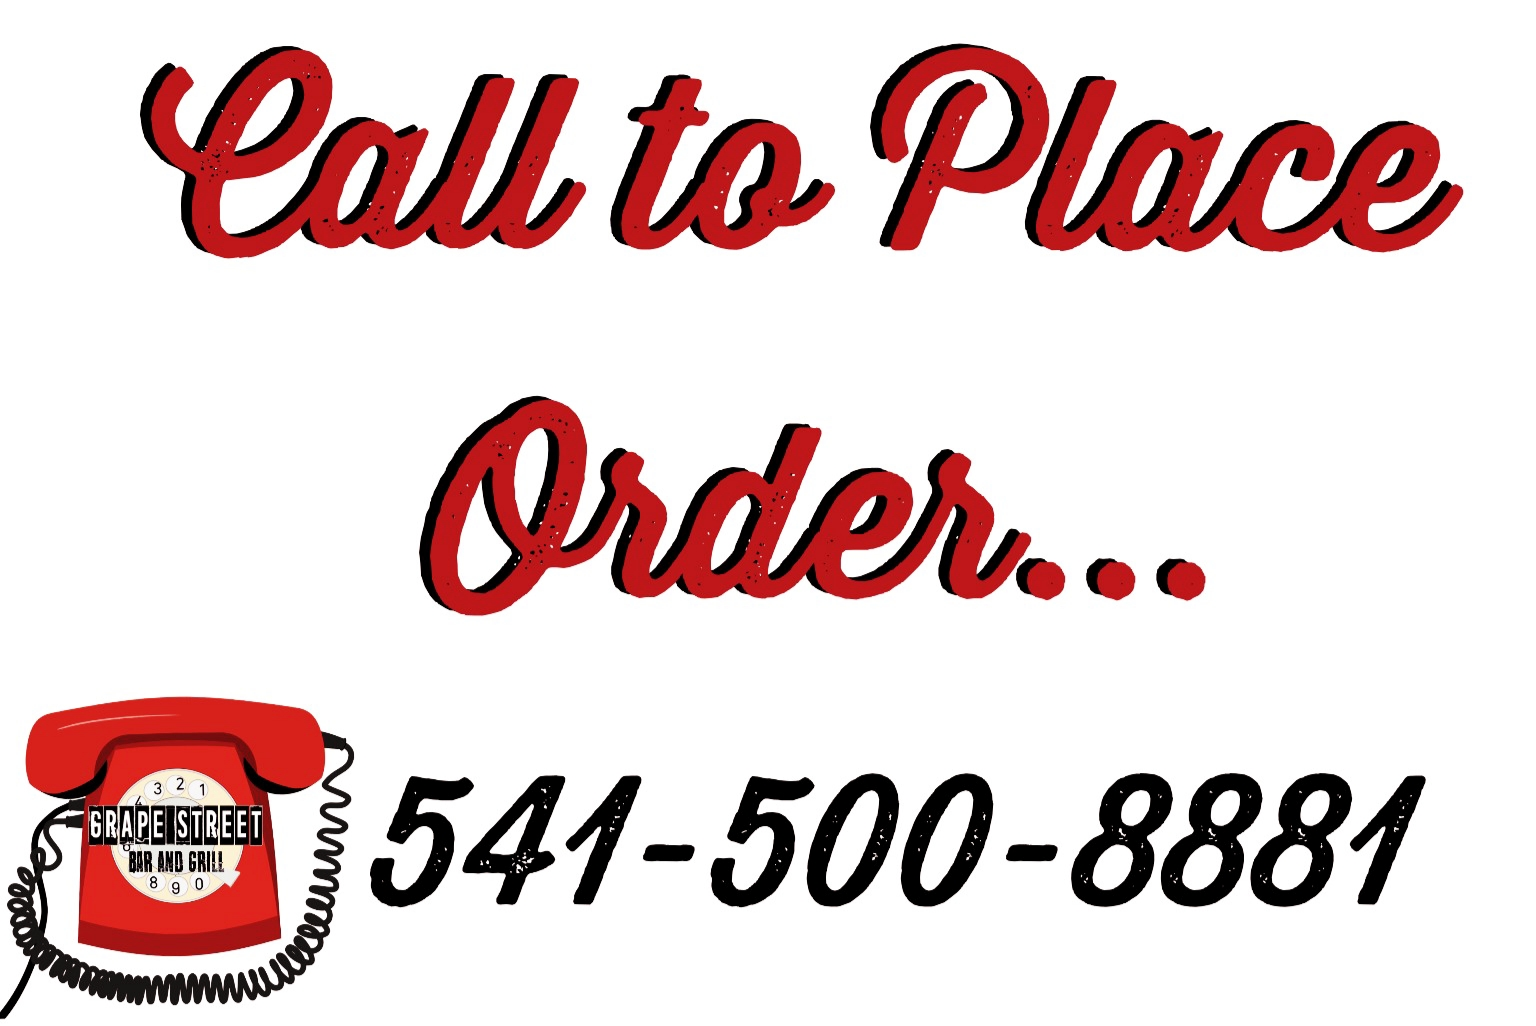 Call To Place Order Grape Street Bar And Grill